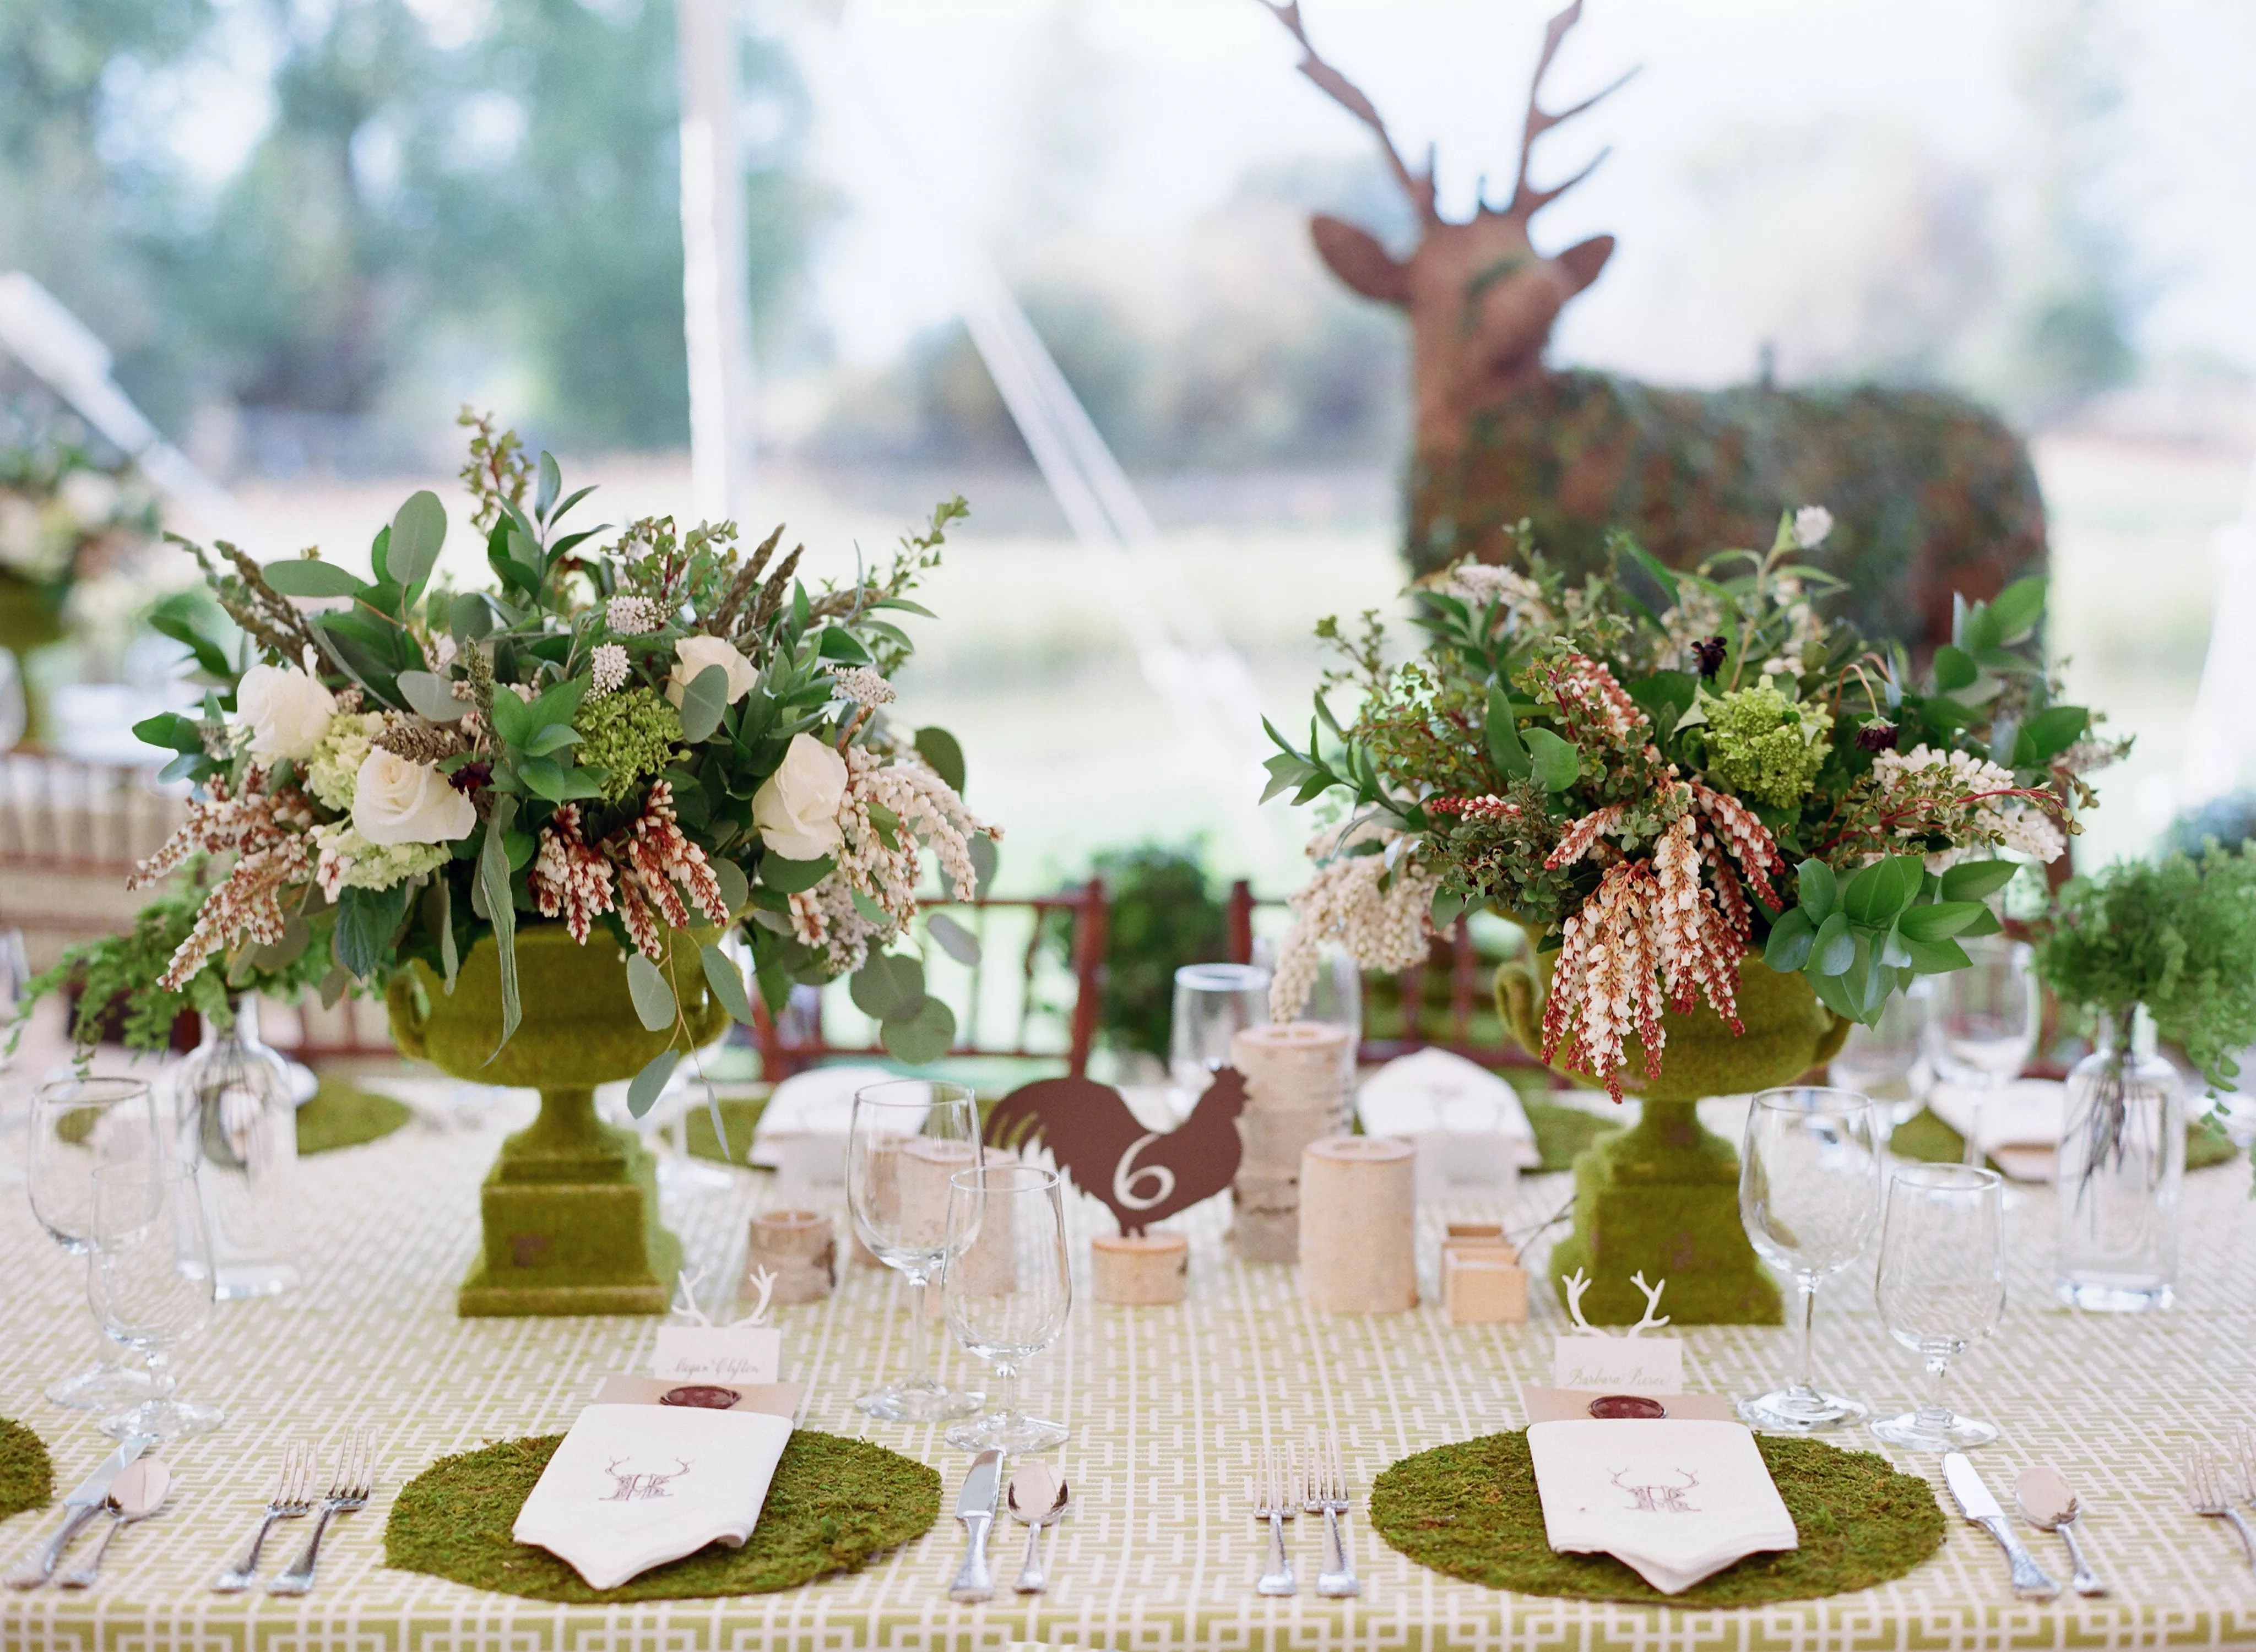 rustic wedding centerpieces photos rustic wedding centerpieces Rustic Tablescape With Live Moss Place Setting